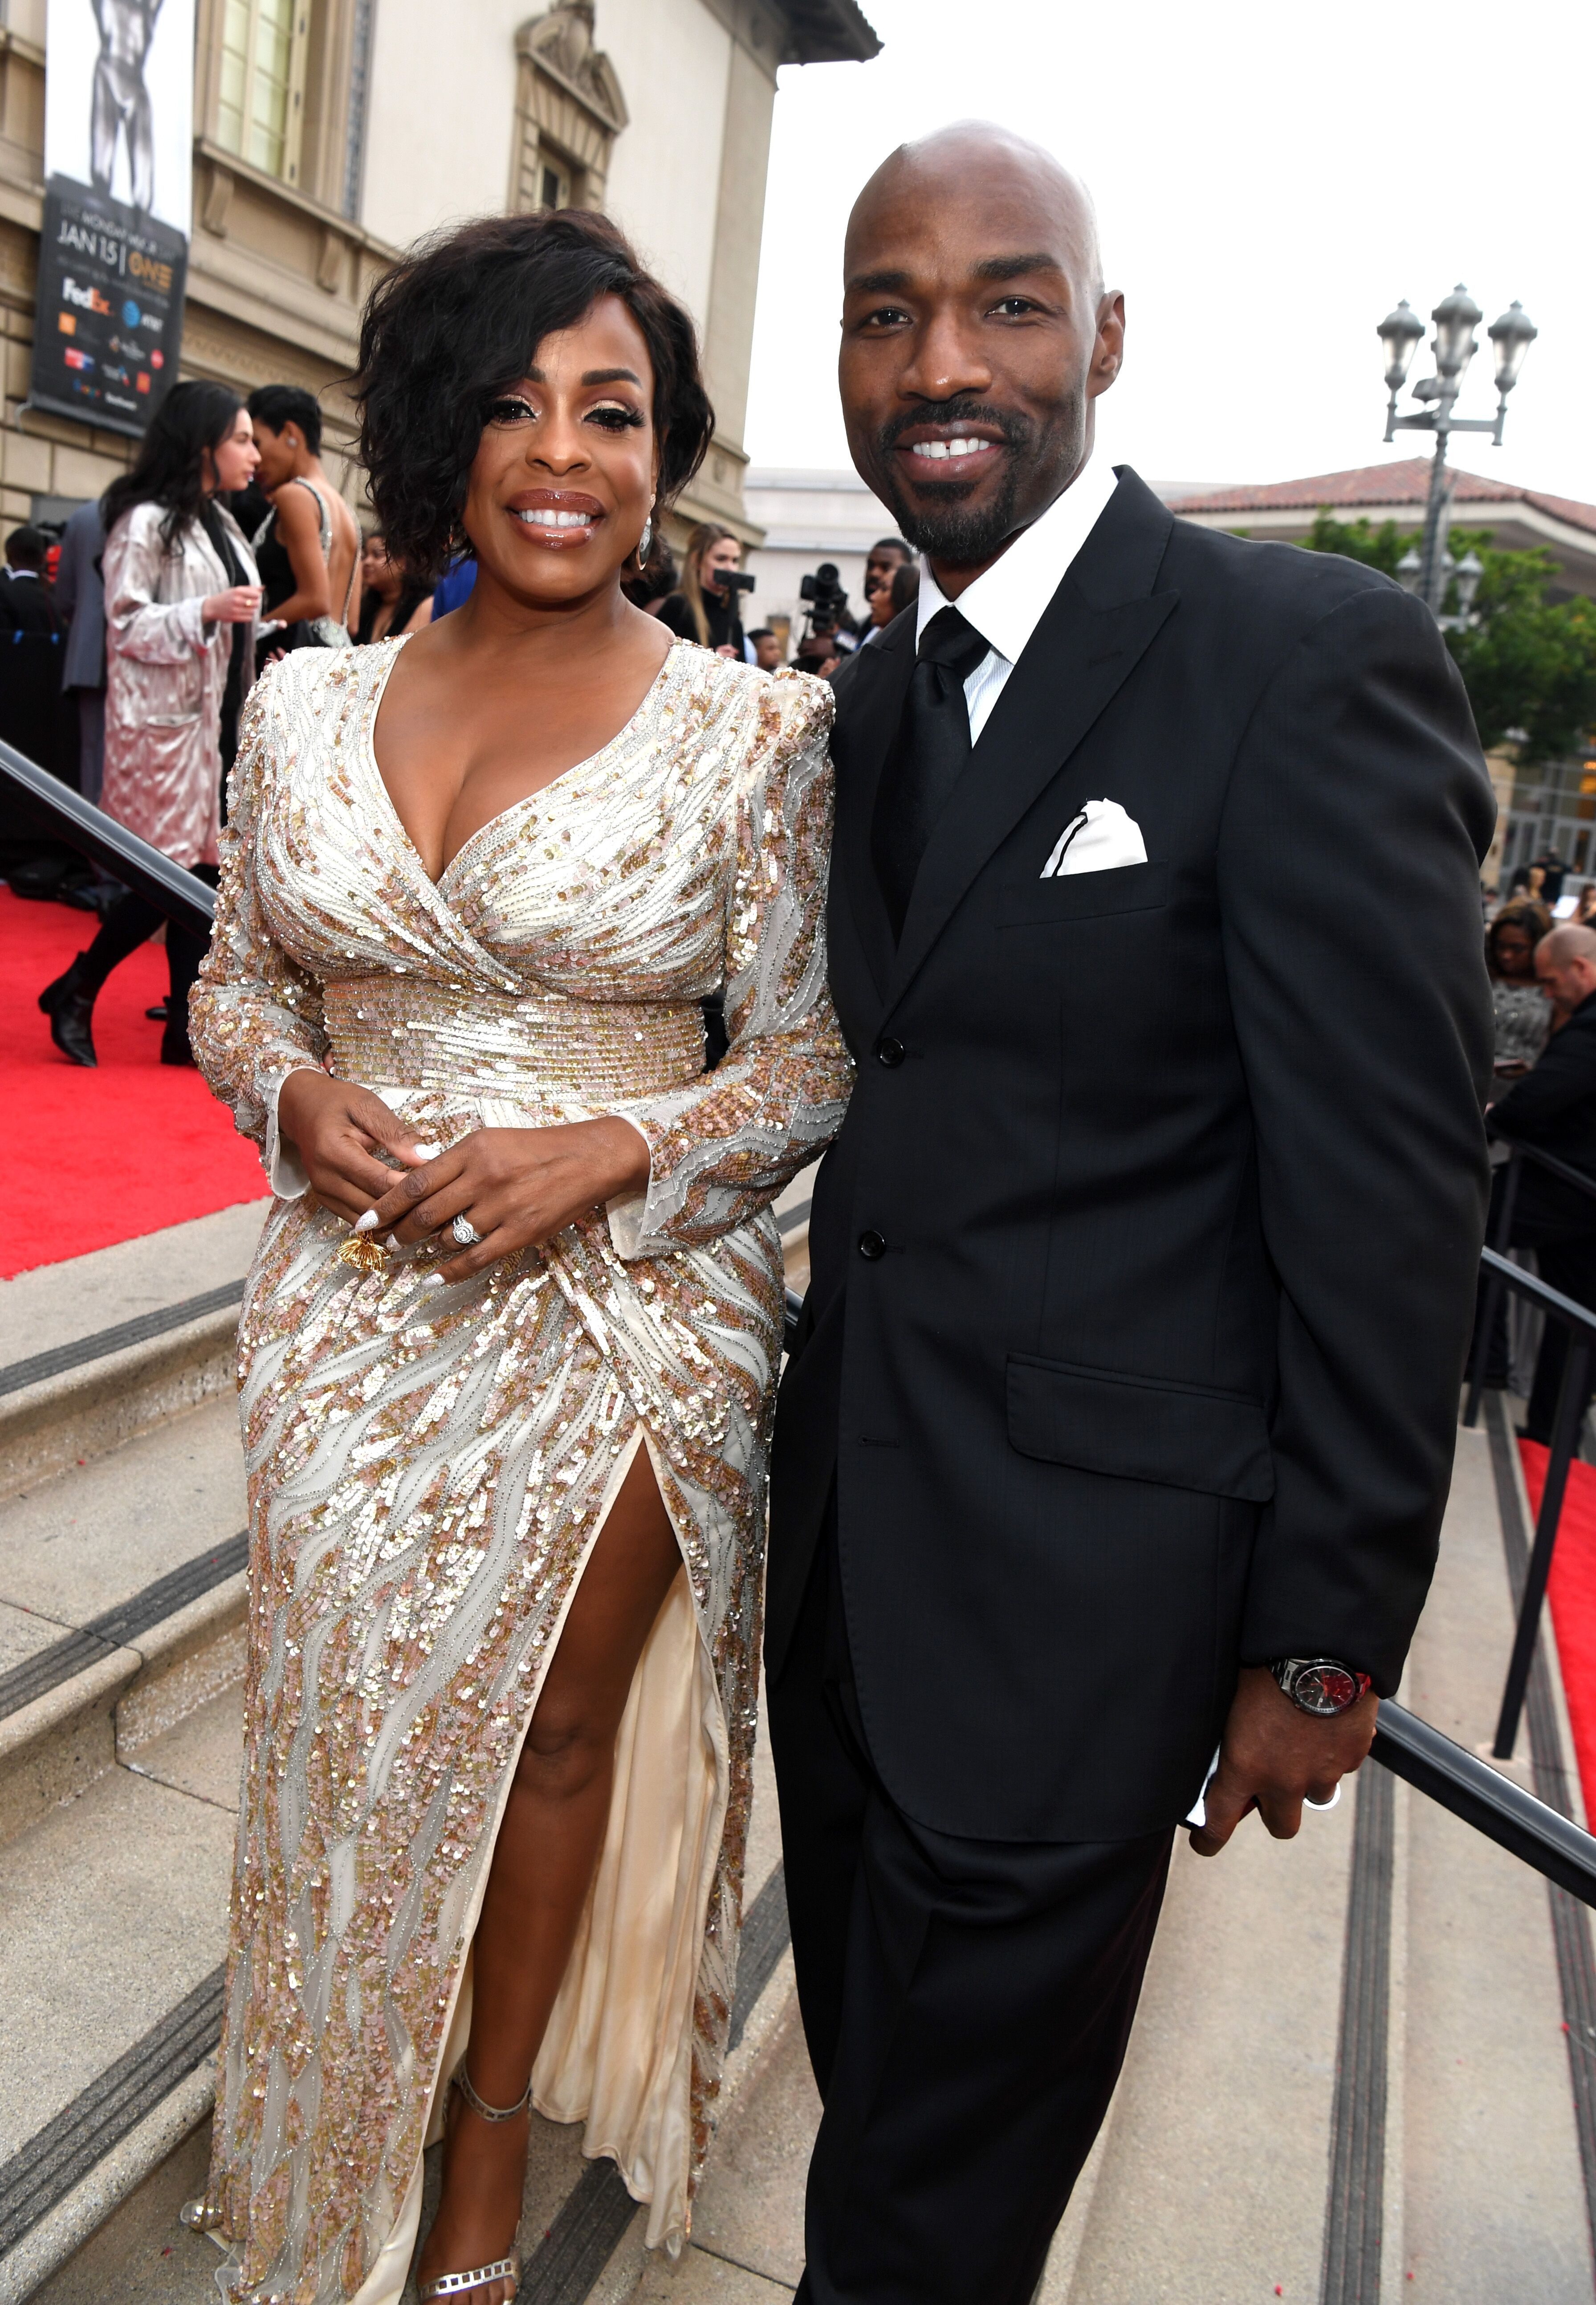 Niecy Nash and Jay Tucker at the 49th NAACP Image Awards in 2018/ Source: Getty Images